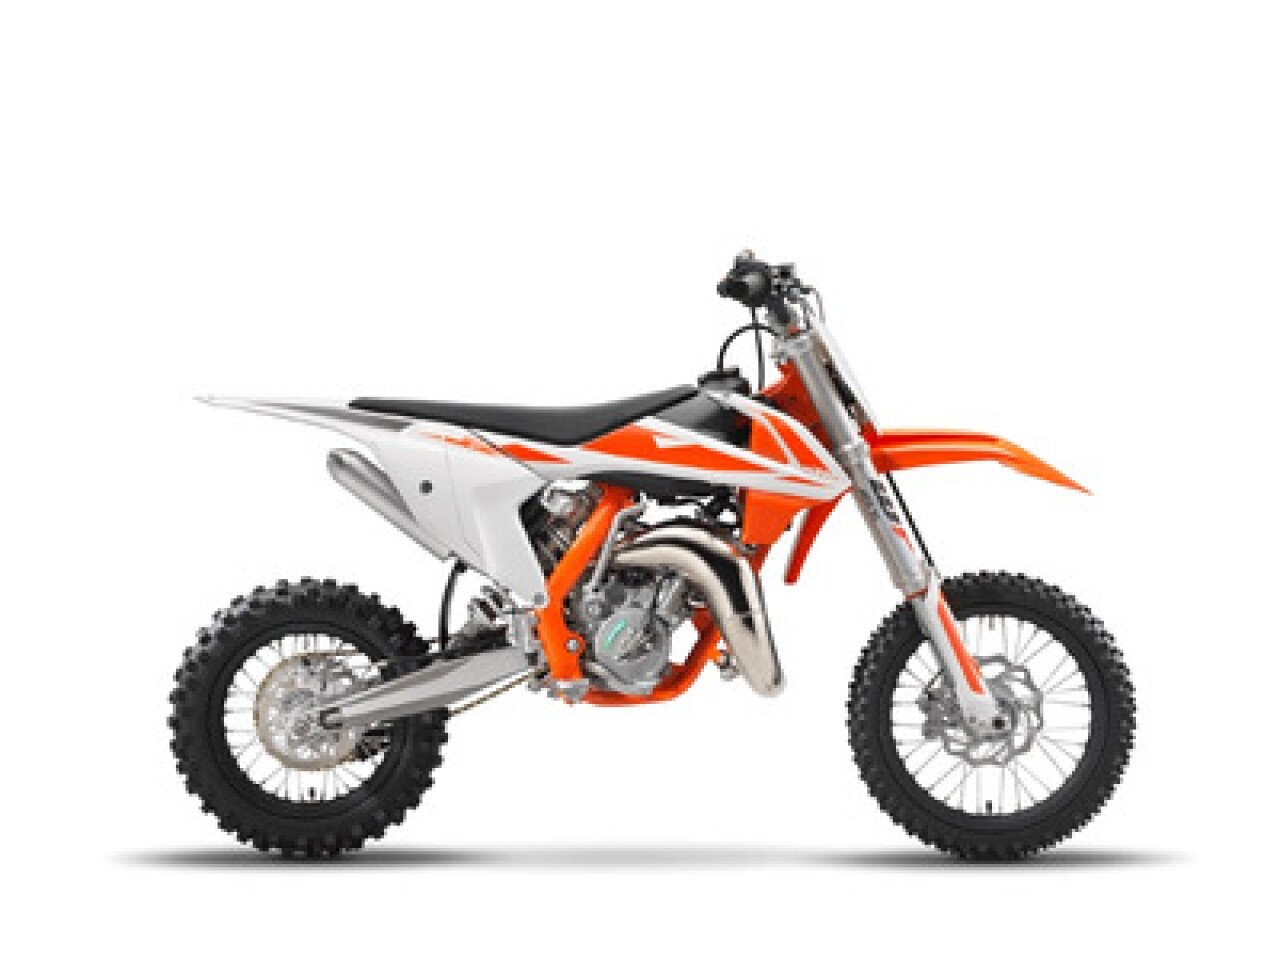 Ktm Electric Scooter Price >> 2019 KTM 65SX for sale near Henderson, North Carolina 27537 - Motorcycles on Autotrader